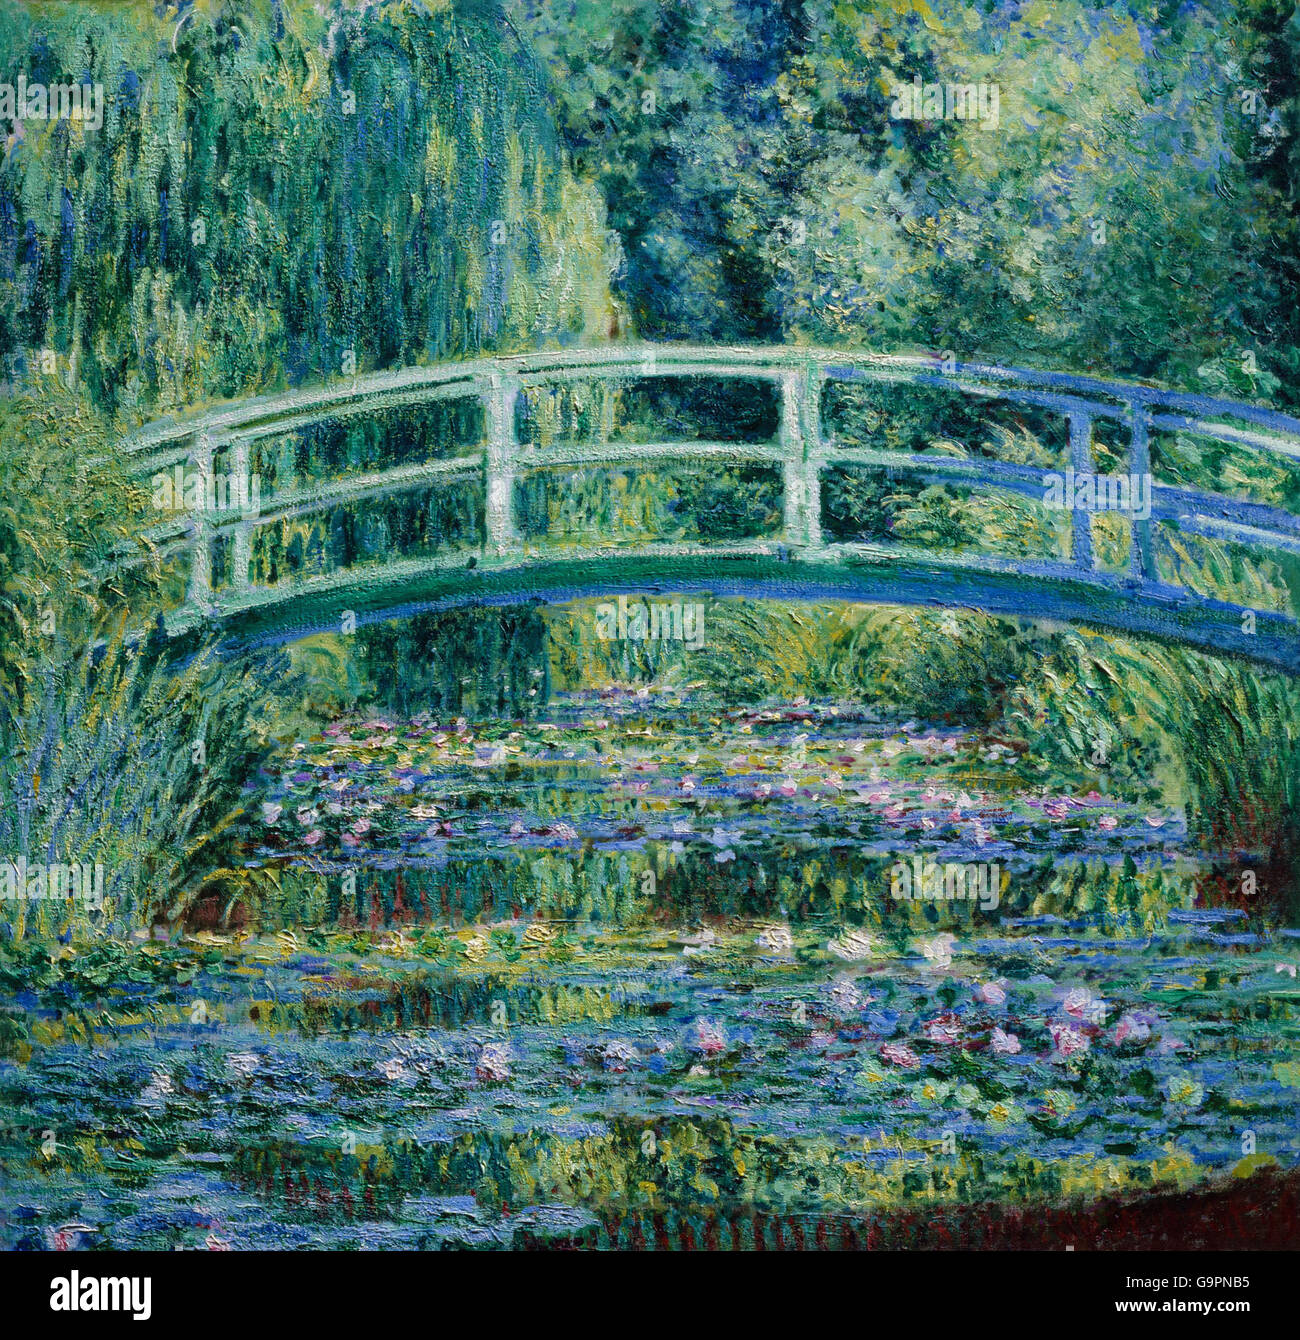 claude monet seerosen und japanische br cke stockfoto bild 109293833 alamy. Black Bedroom Furniture Sets. Home Design Ideas